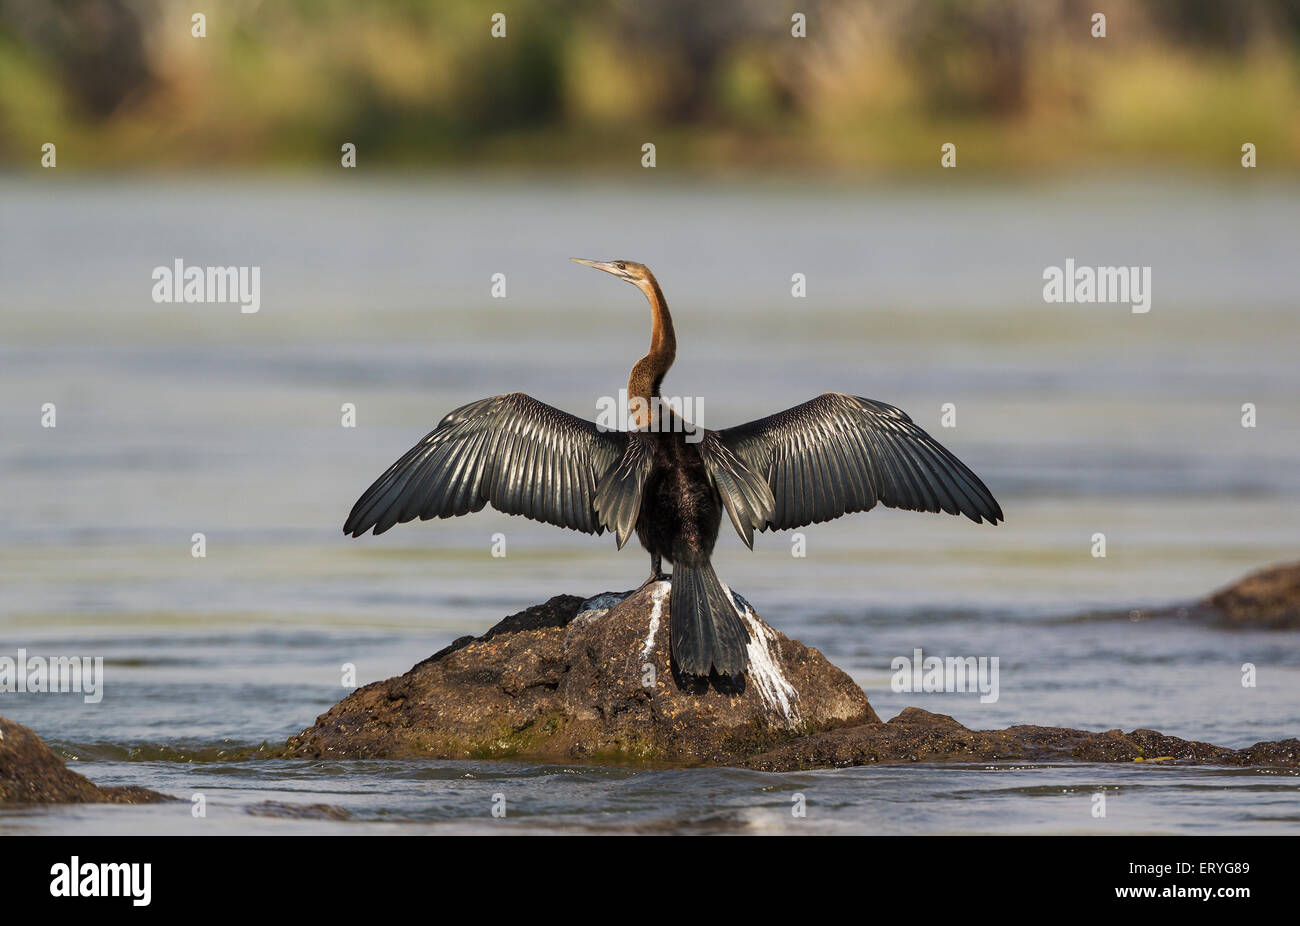 African Darter (Anhinga rufa), basking in order to dry the feathers, on a rock in the Chobe River, Chobe National - Stock Image